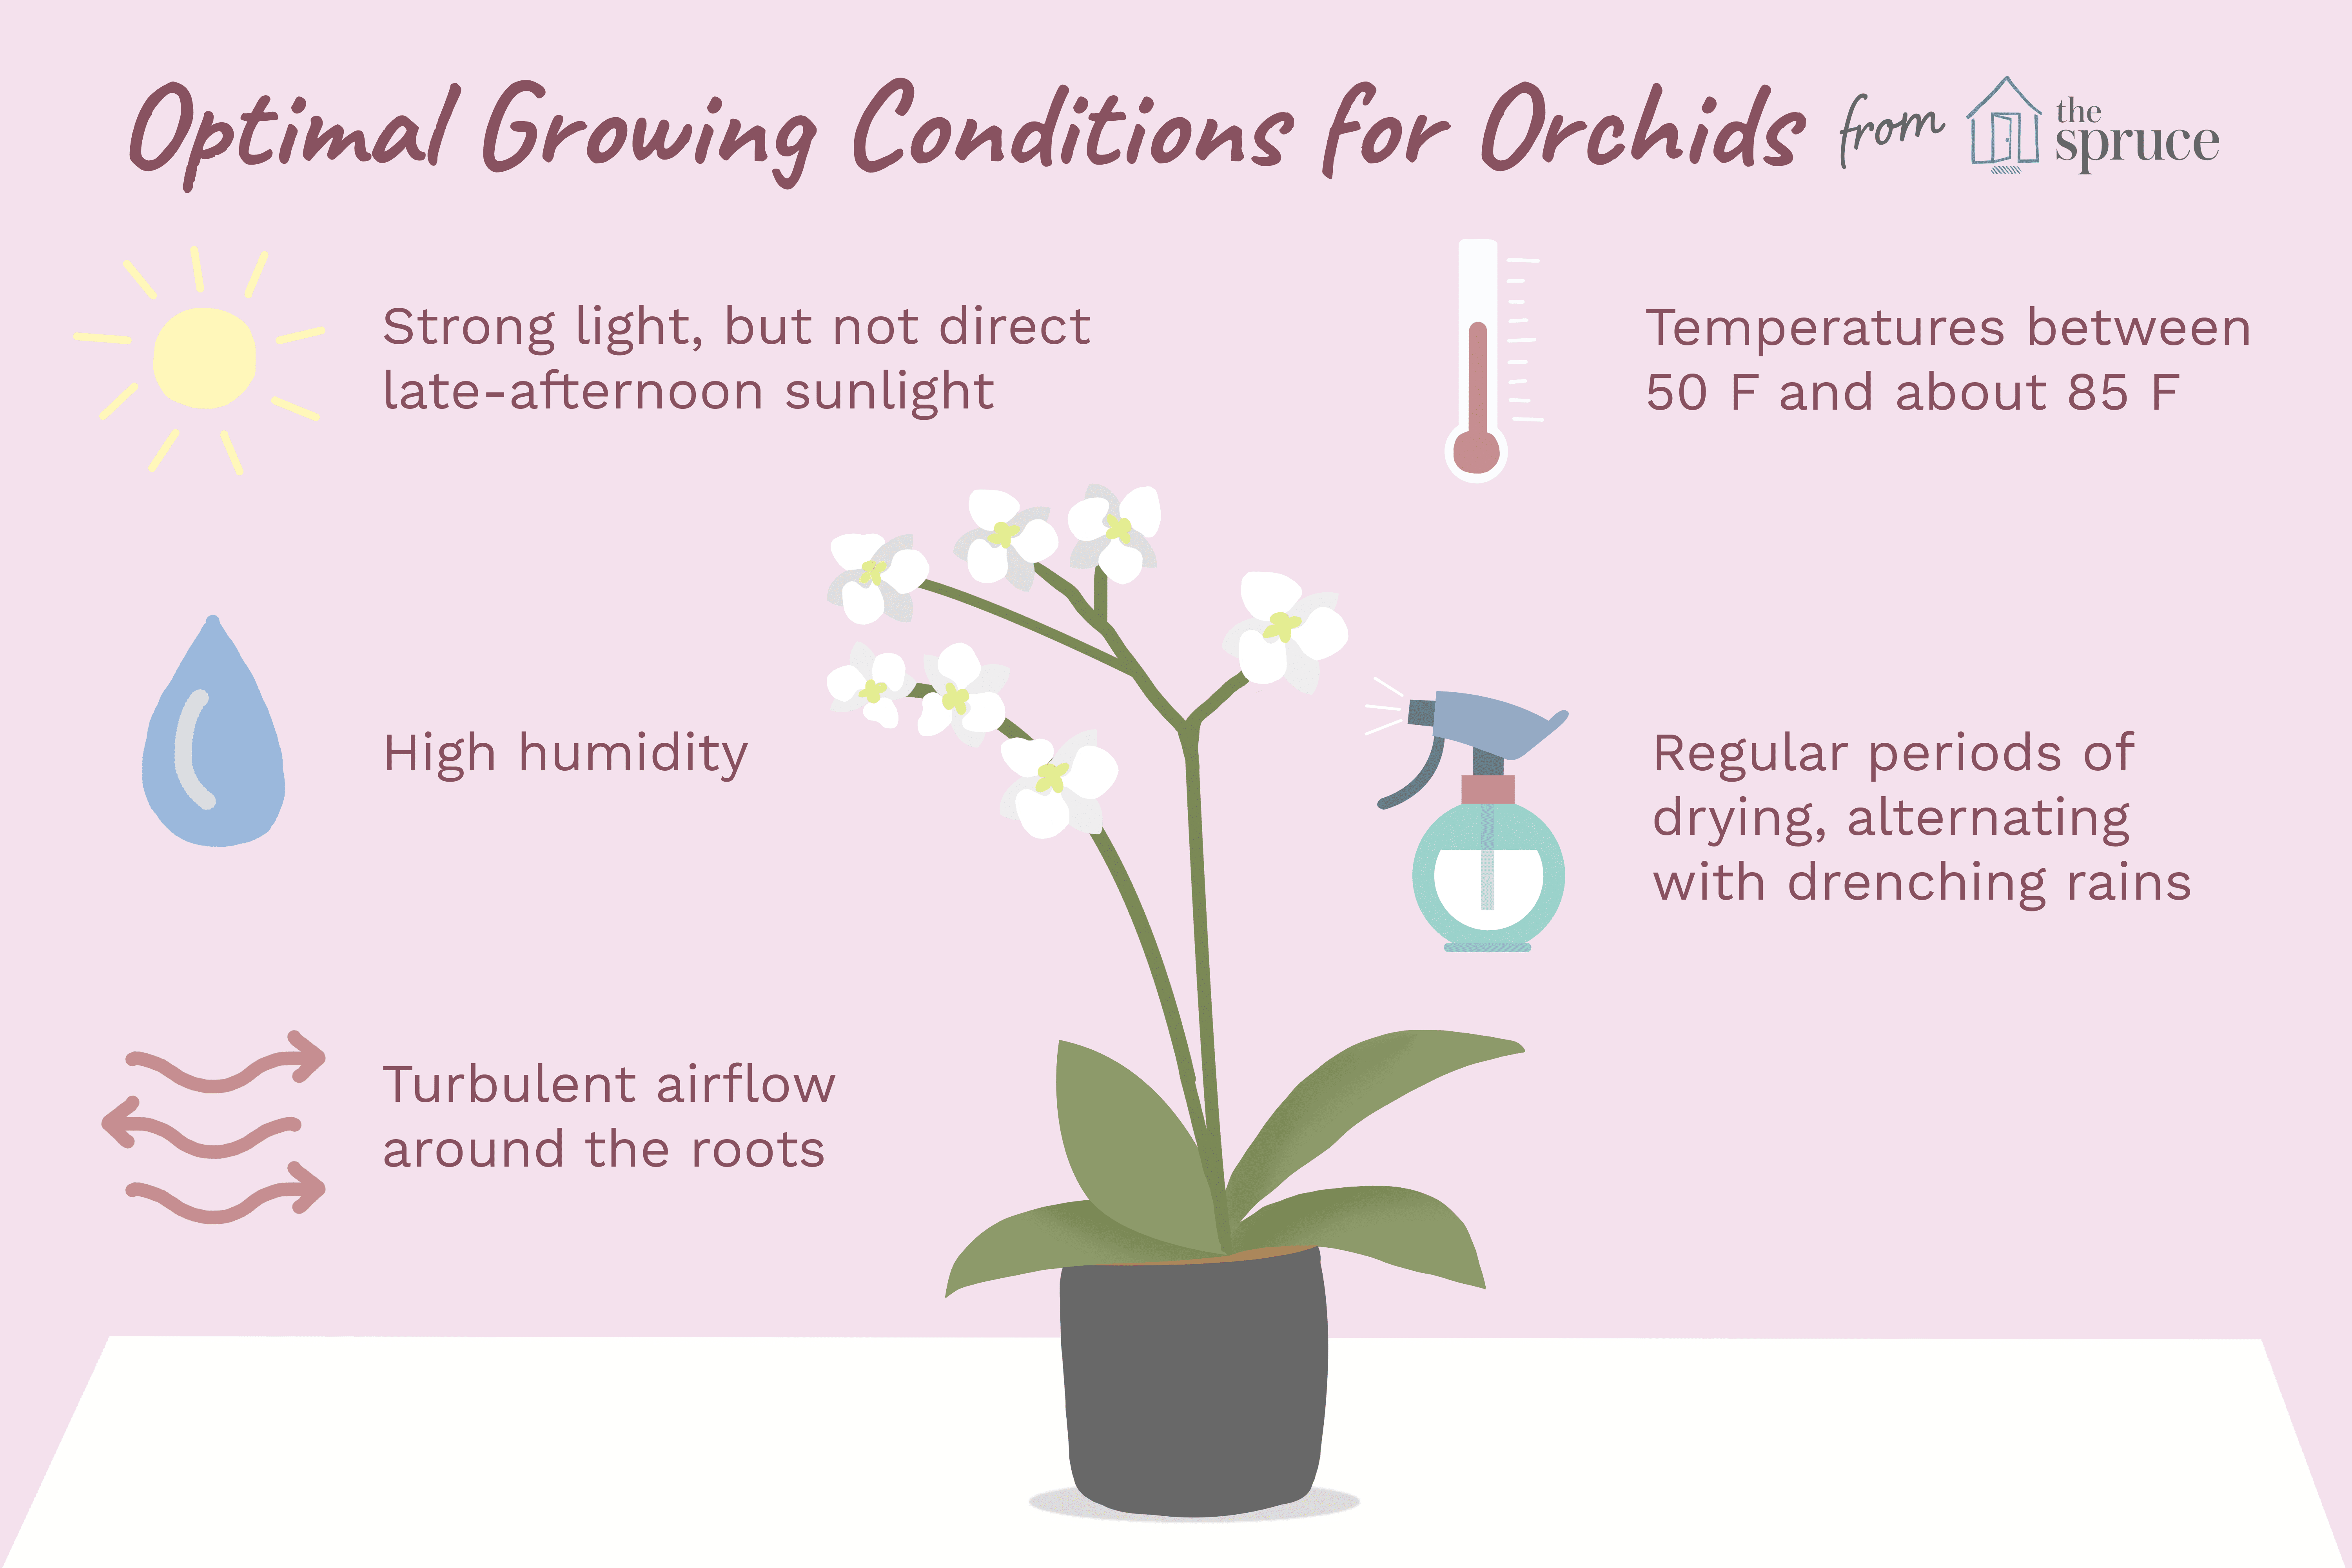 illustration of optimal growing conditions for orchids